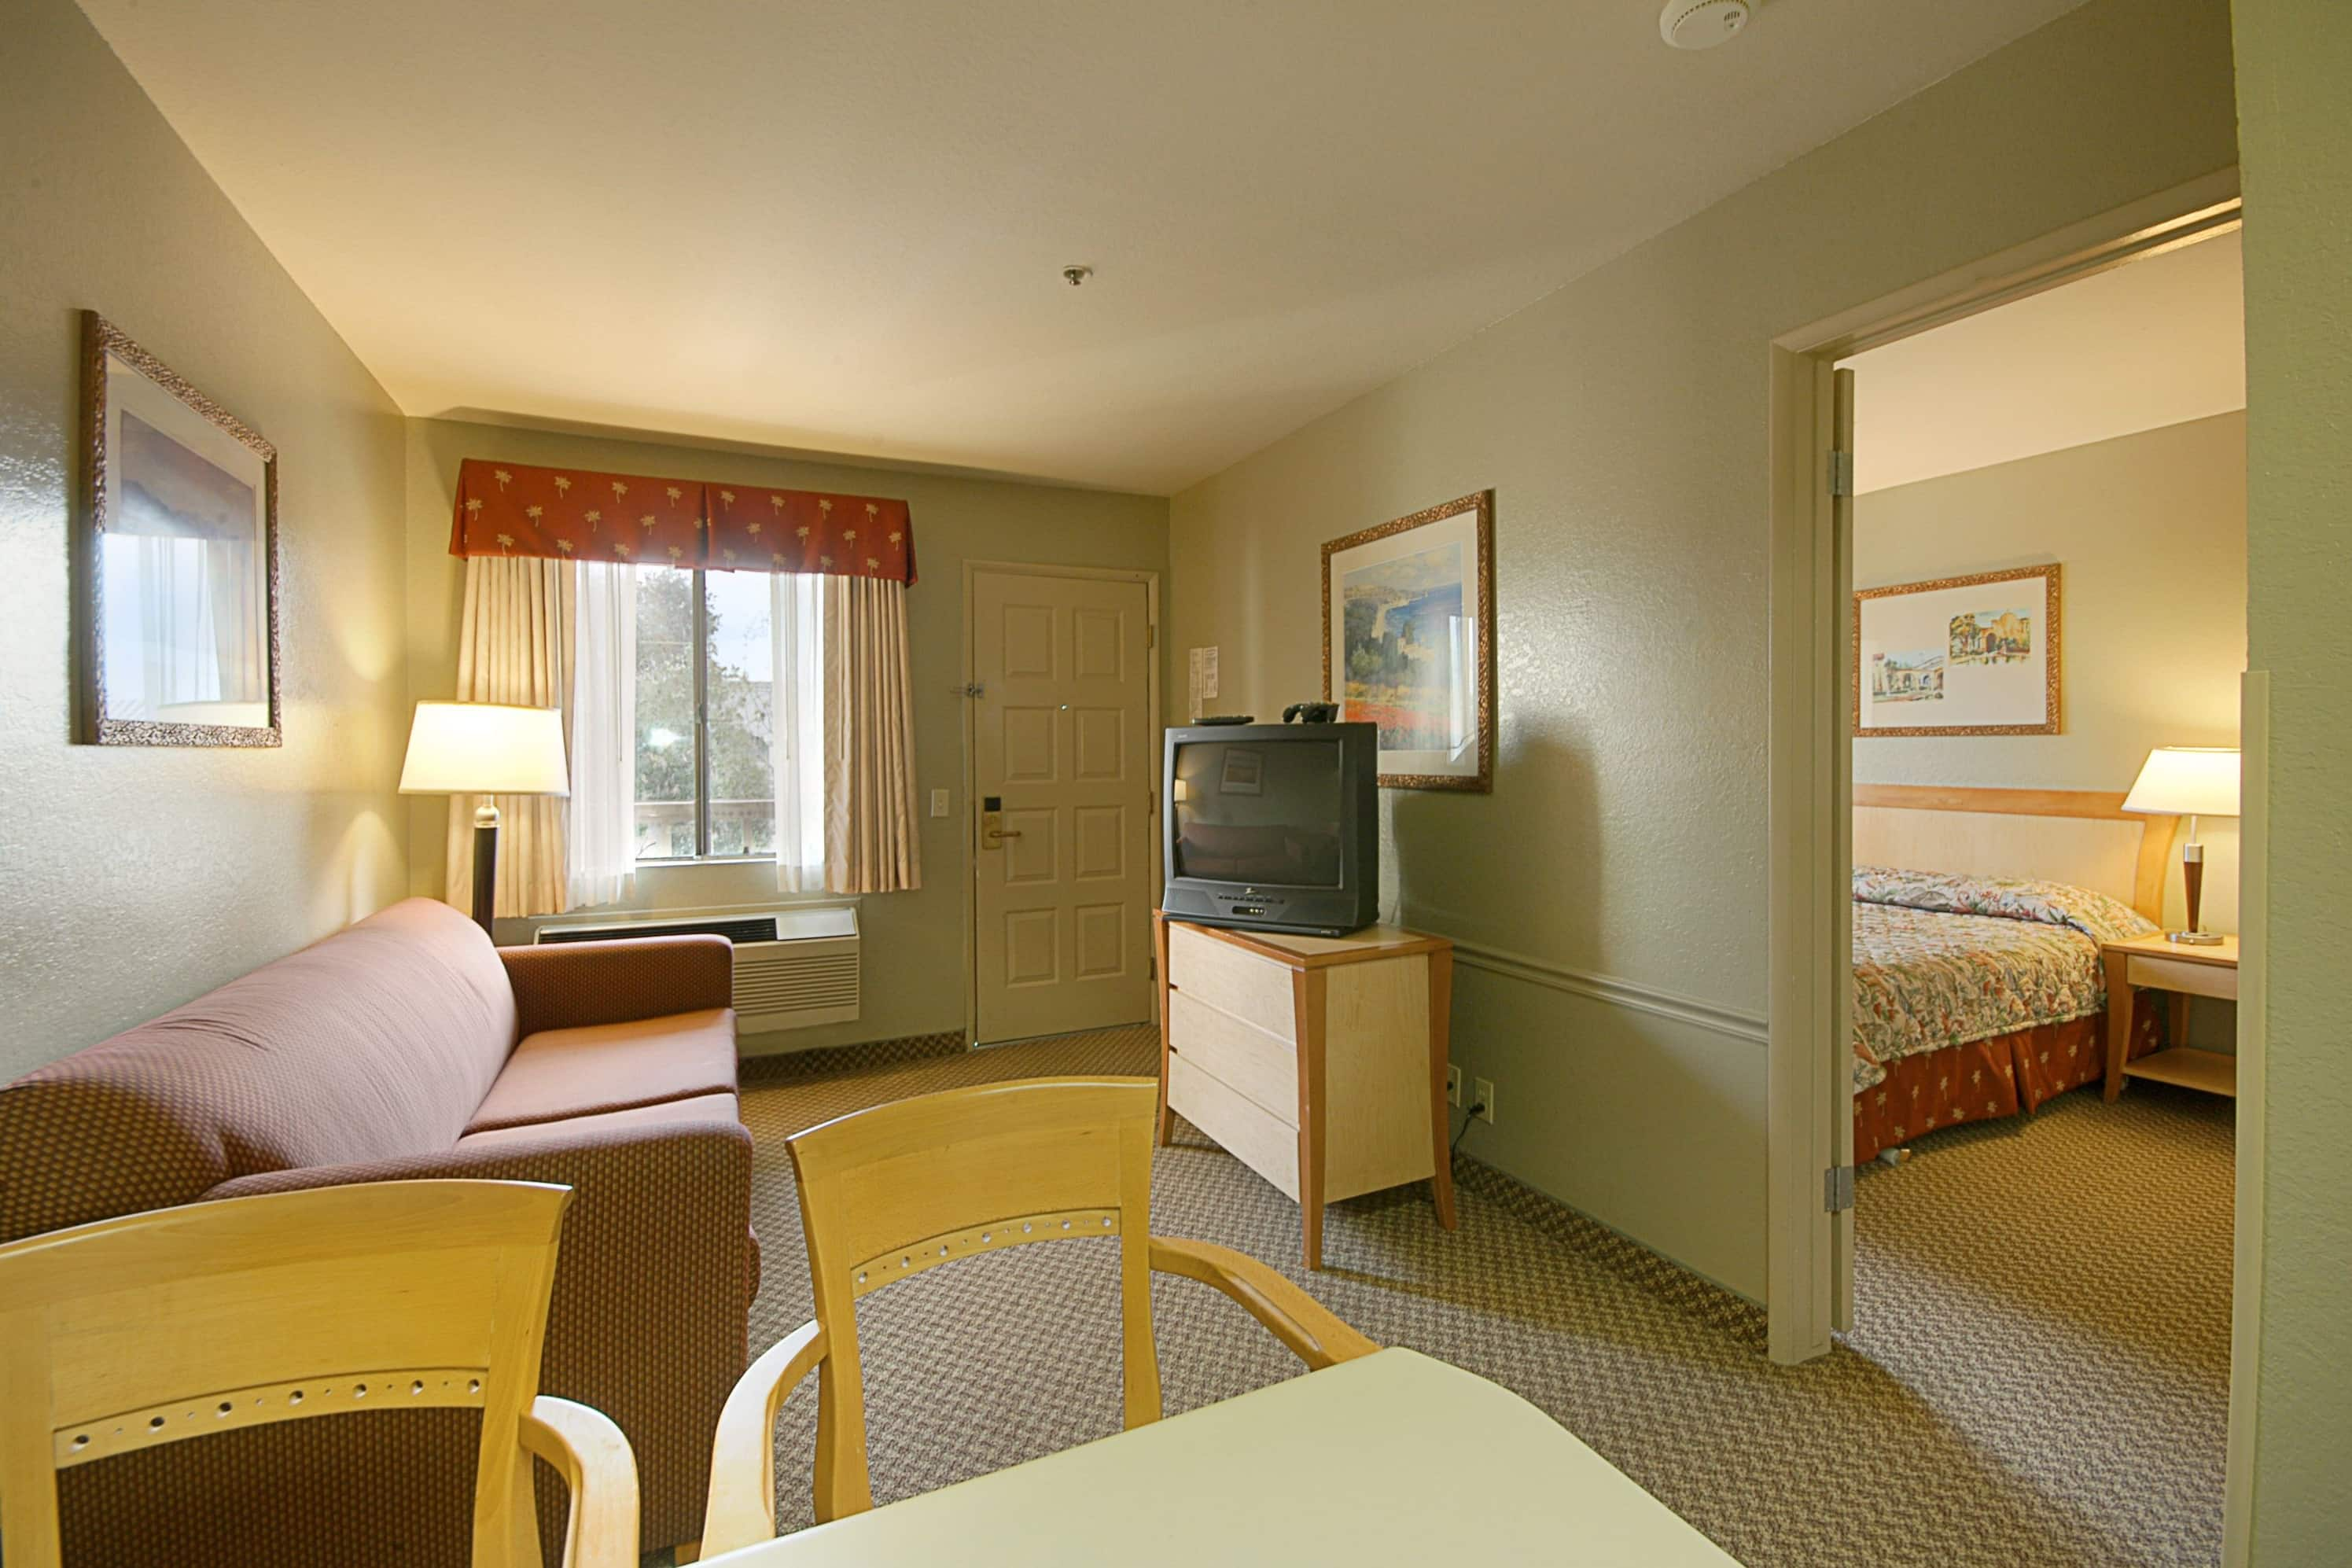 Ramada Carlsbad suite in Carlsbad, California